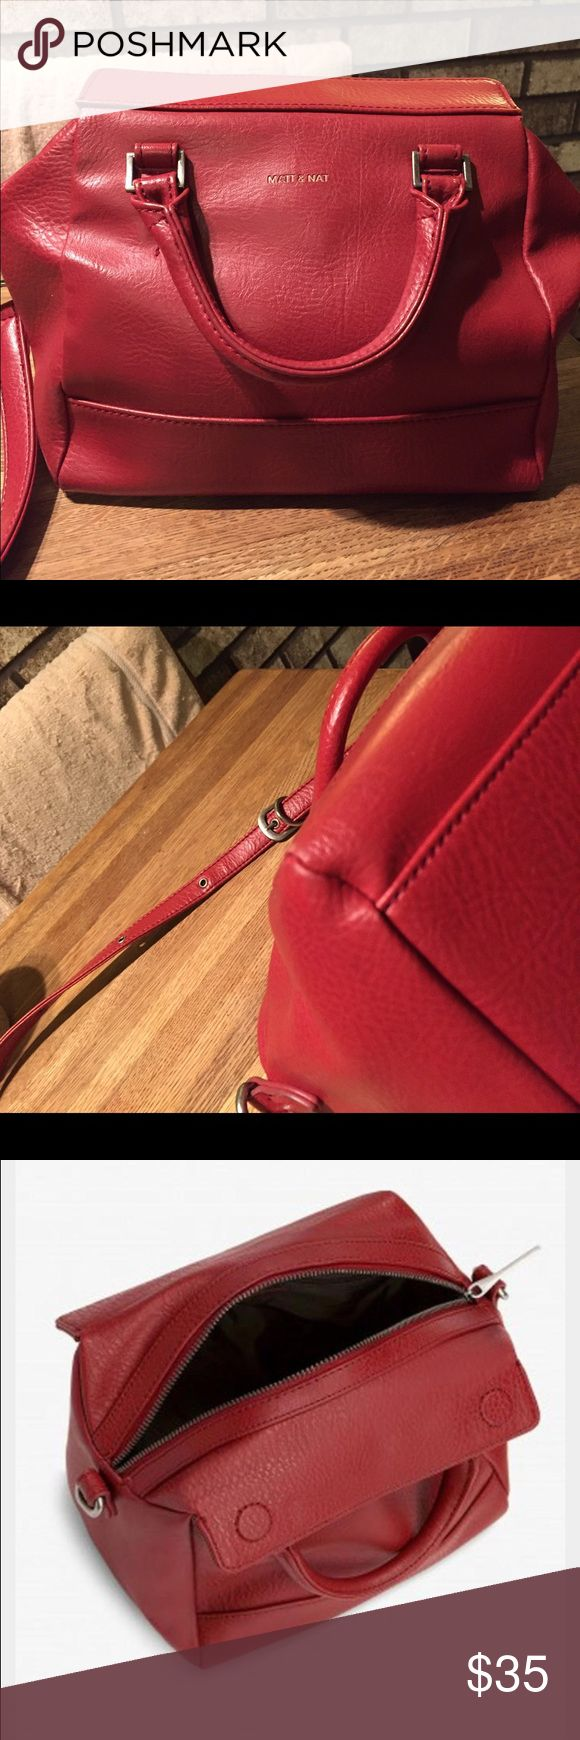 Matt and Nat Carrie Handbag Matt and Nat Carrie bag in red. Measures 11x7x5 with a shoulder strap drop of 15-21 inches. This bag is from the Matt and Nat dwell collection. This bag has been used with slight wear but is still in good condition. Vegan leather. Matt and Nat Bags Satchels